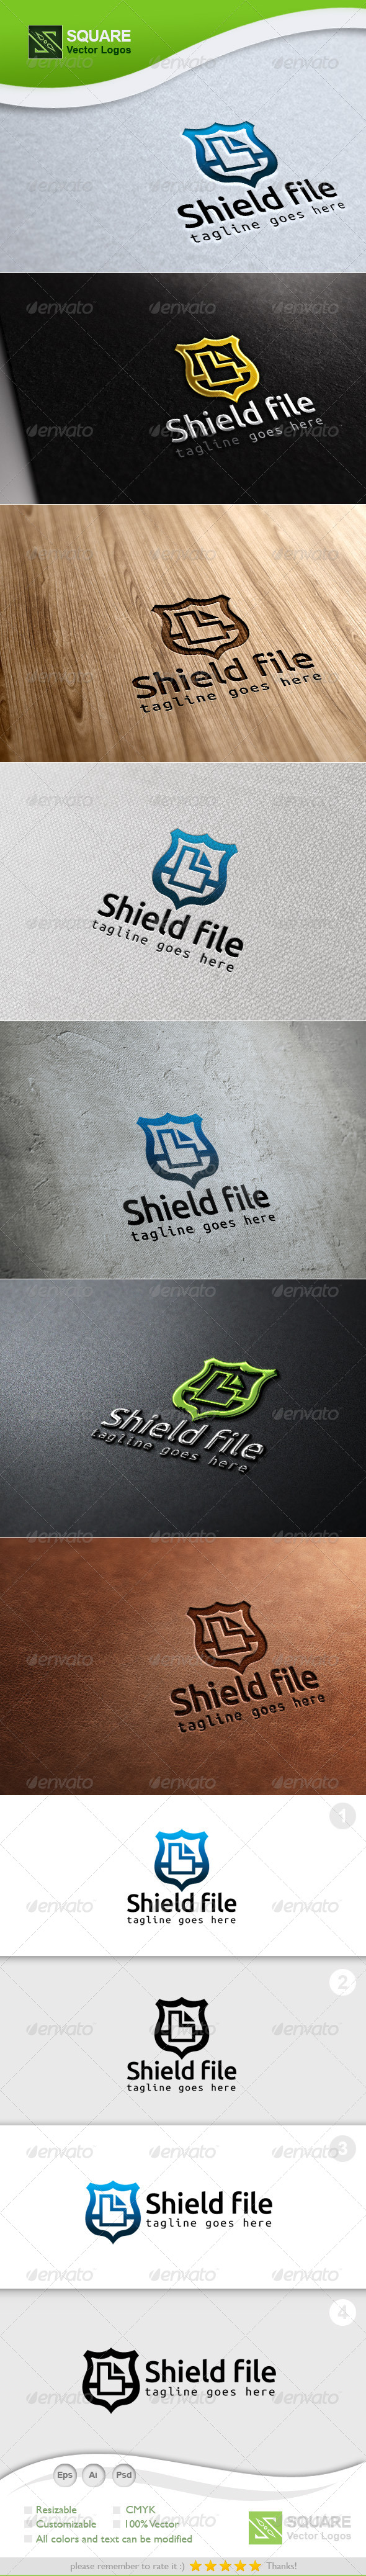 Shield, File Vector Logo Template